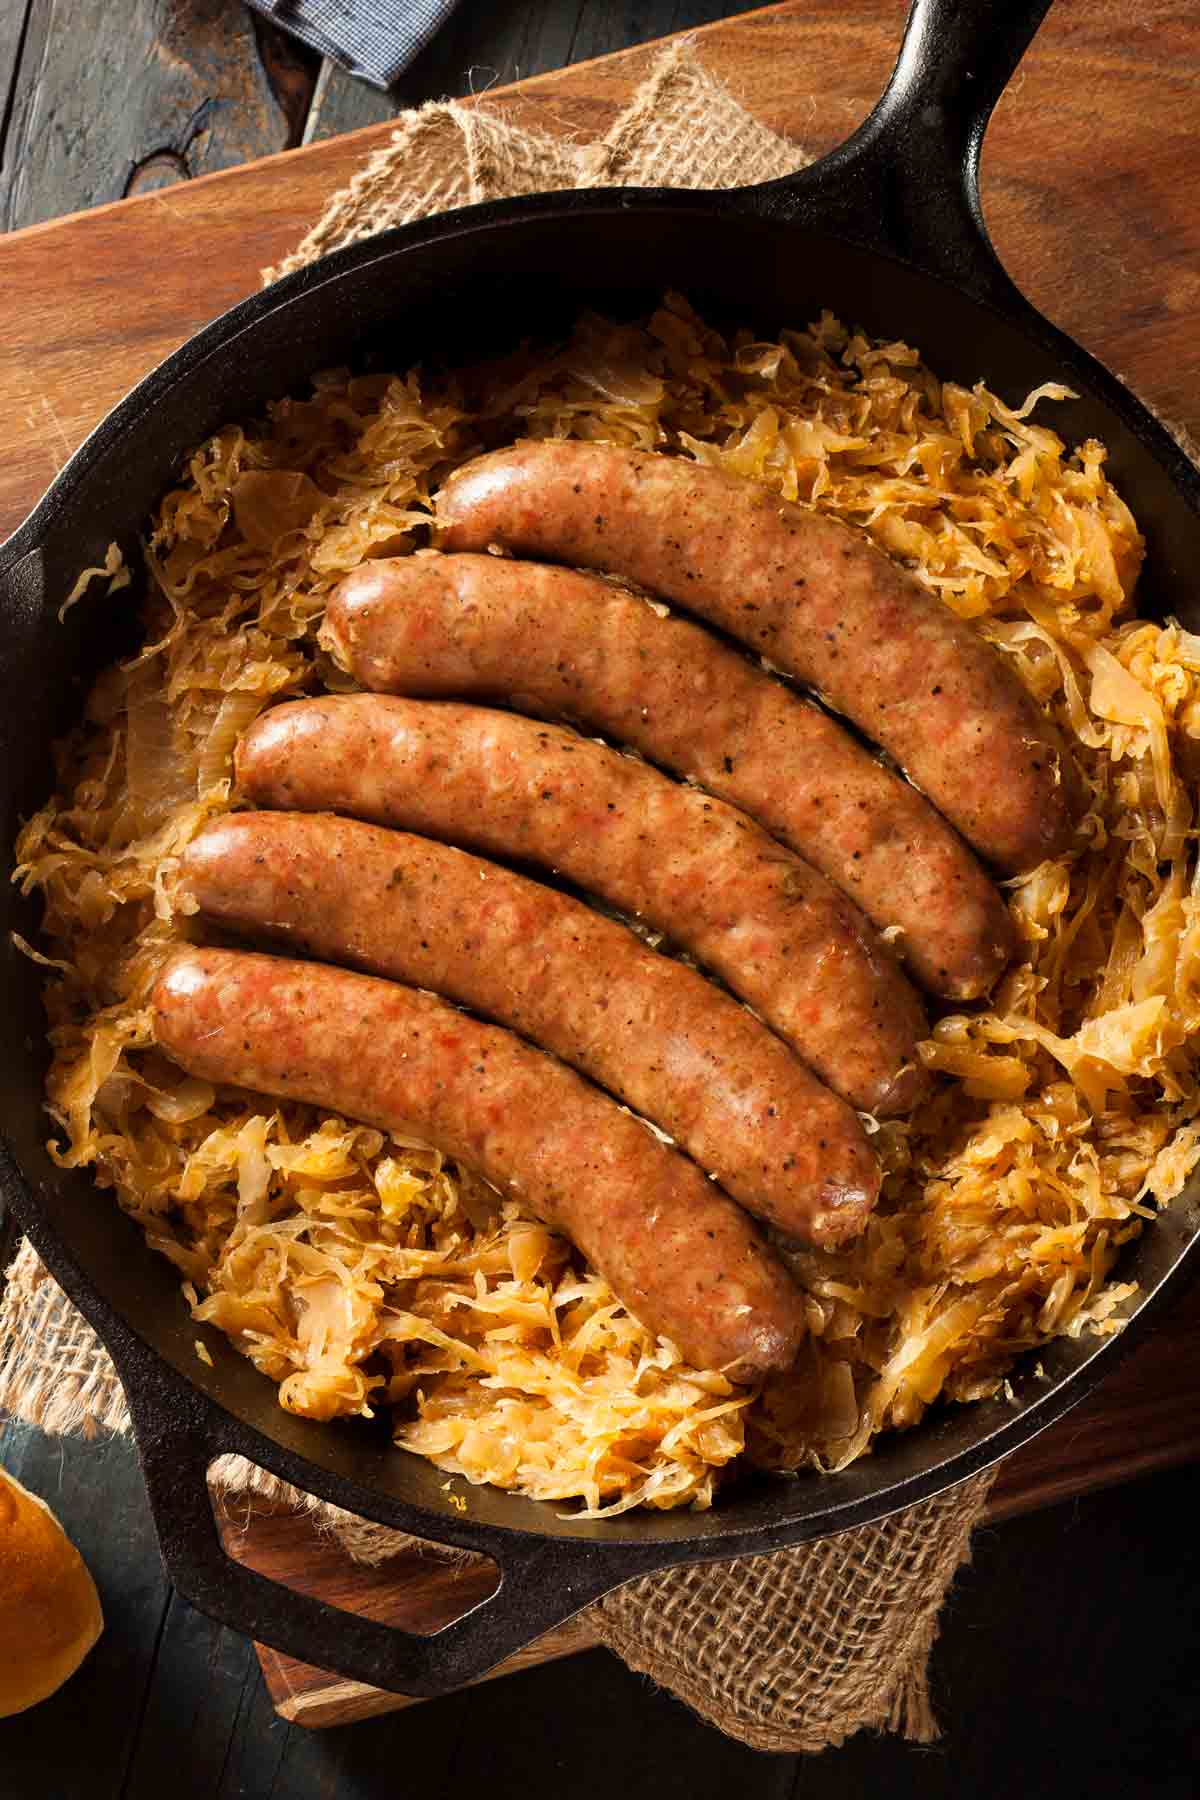 Browned German sausage over a layer of sauerkraut in a skillet